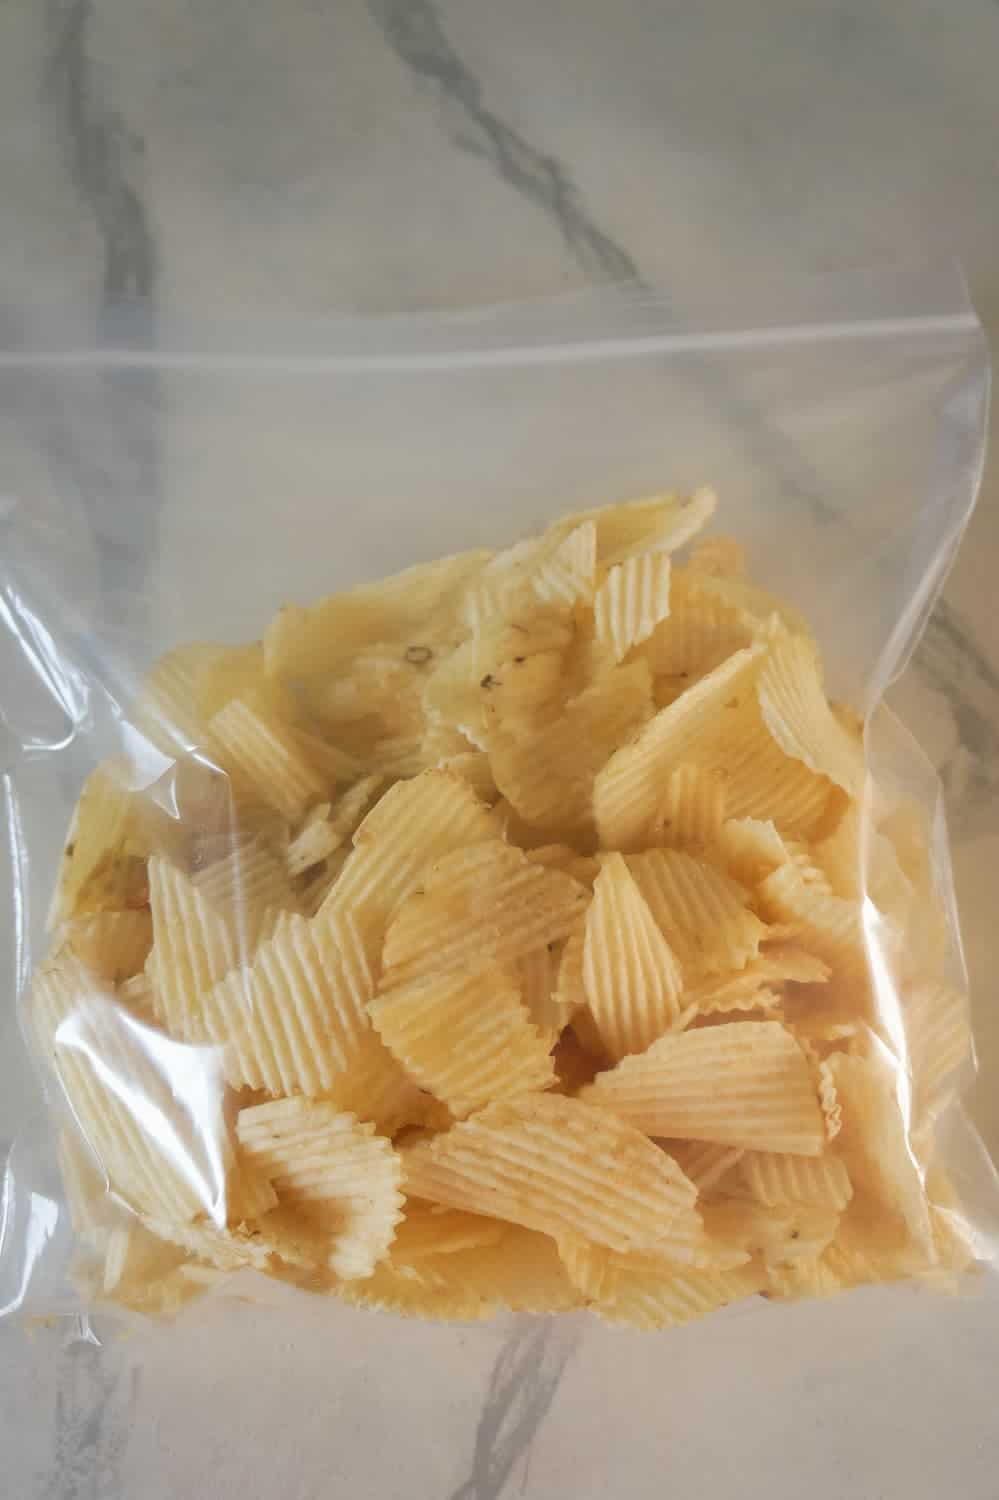 Ruffles potato chips in a Ziploc bag